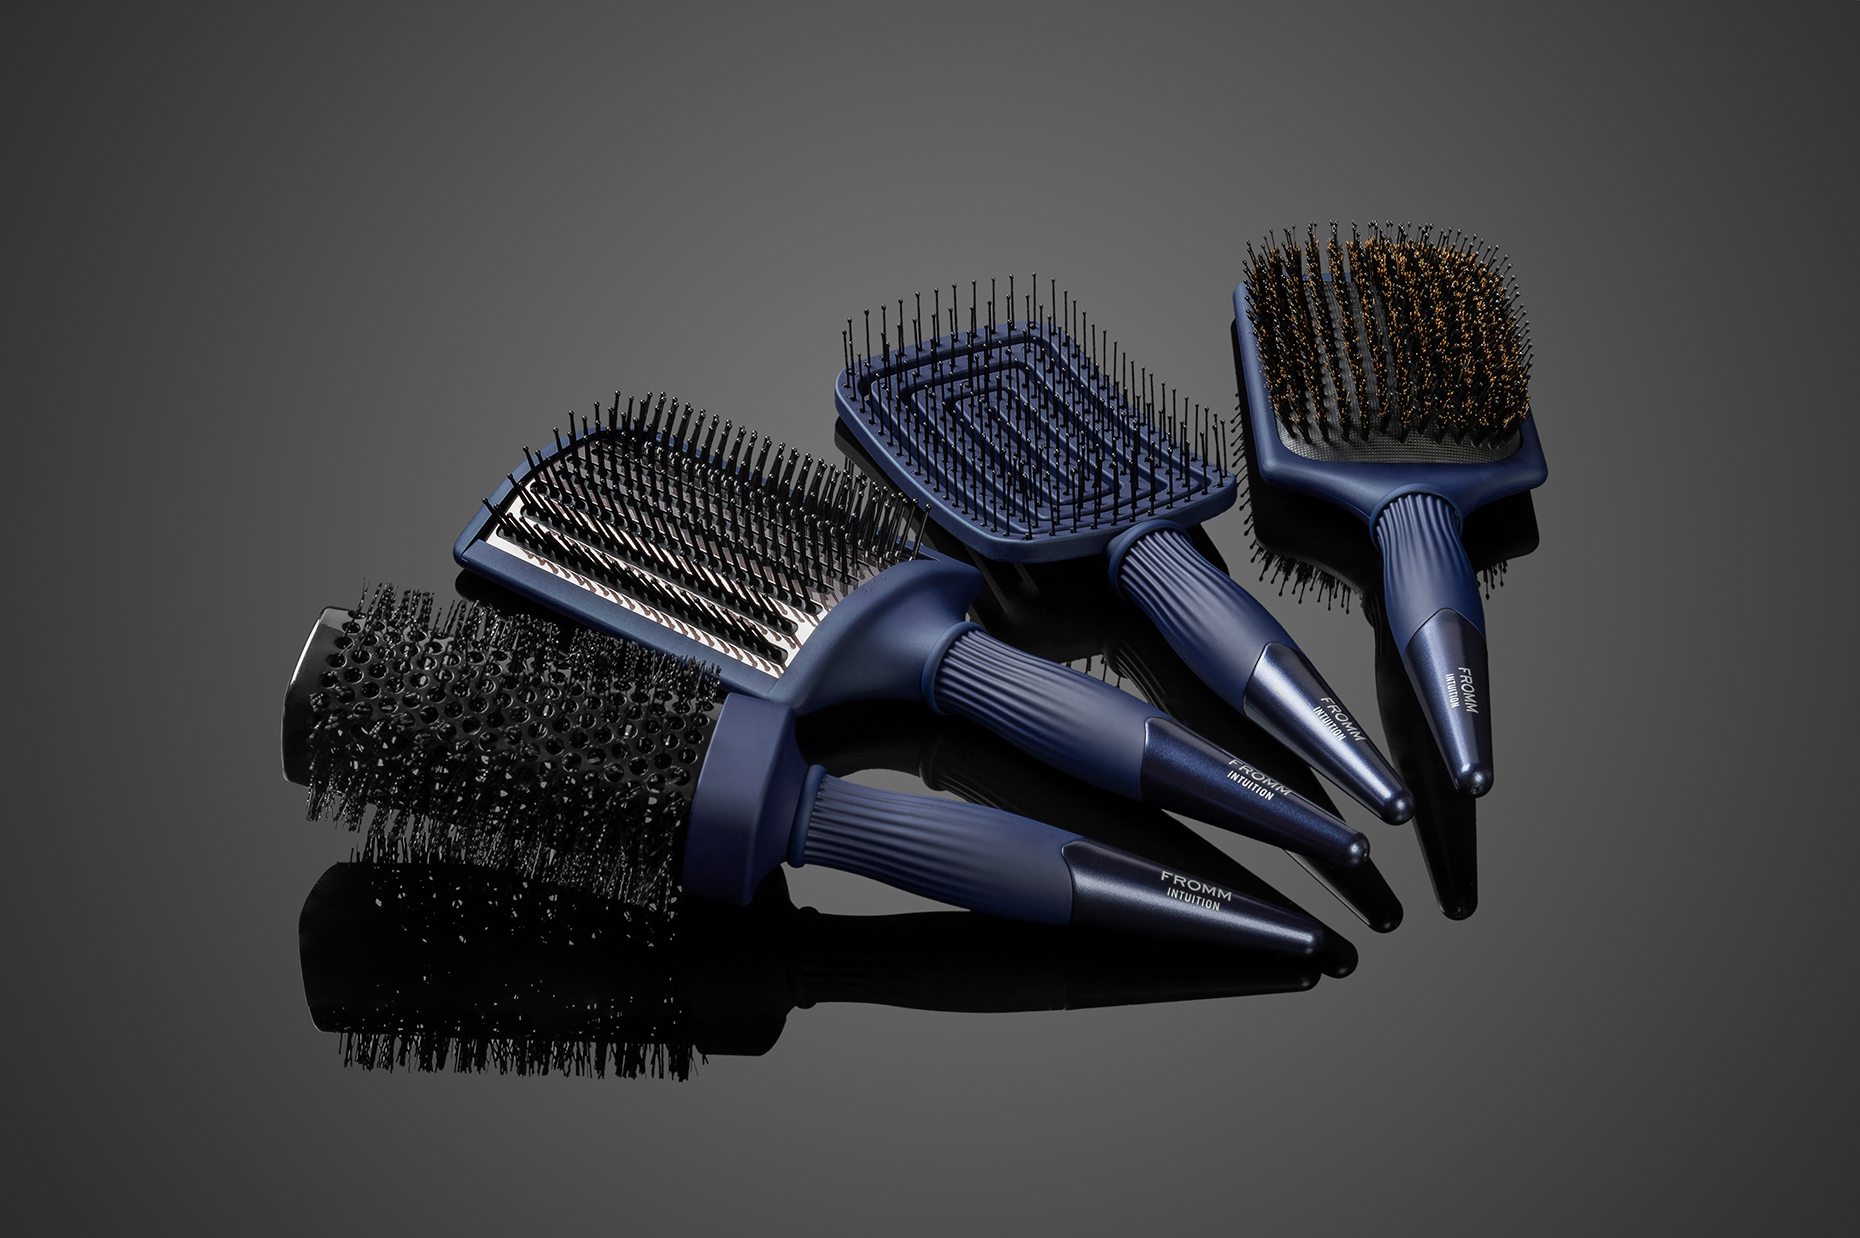 Fromm Hair Brushes, flat brushes series, for hair care professionals